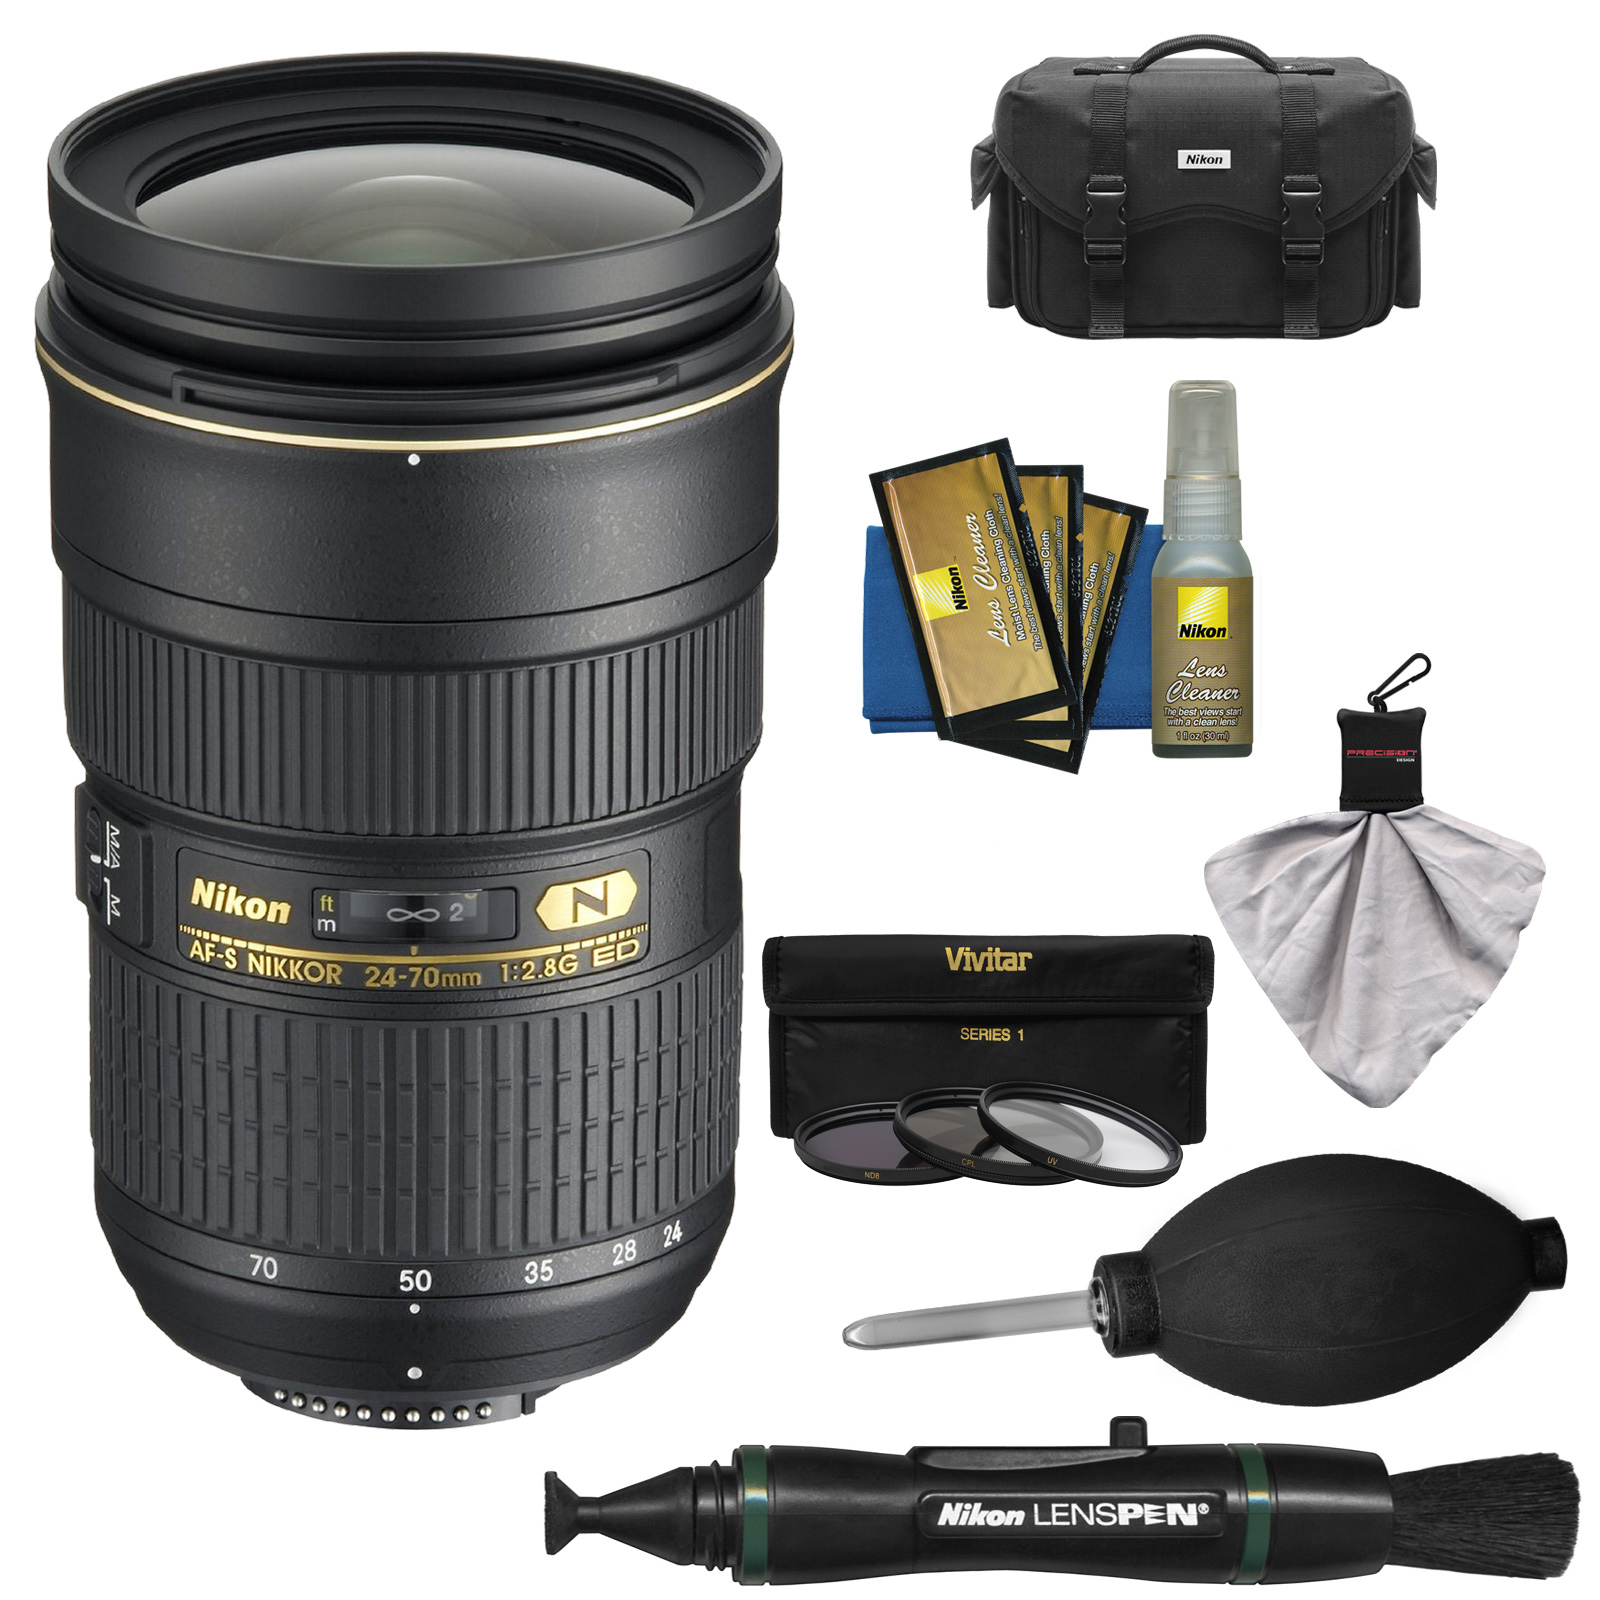 Nikon 24-70mm f/2.8G AF-S ED Zoom-Nikkor Lens with Case + 3 Filter + Kit for D3200, D3300, D5300, D5500, D7100, D7200, D750, D810 Cameras